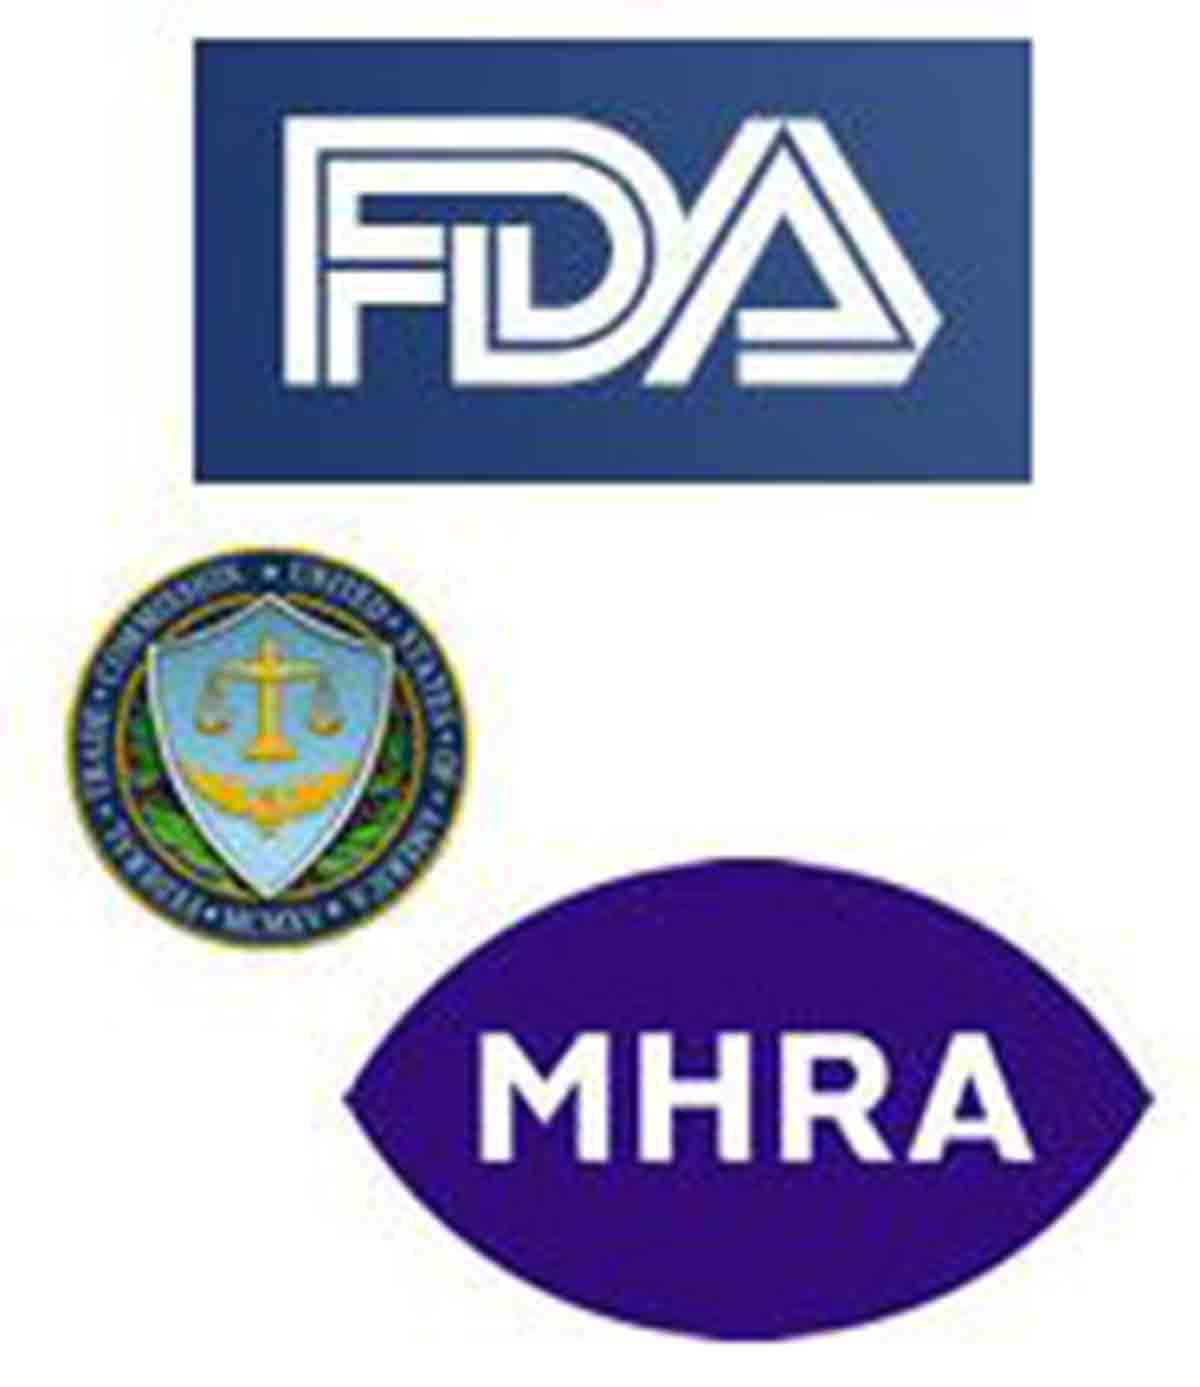 Supplement regulators